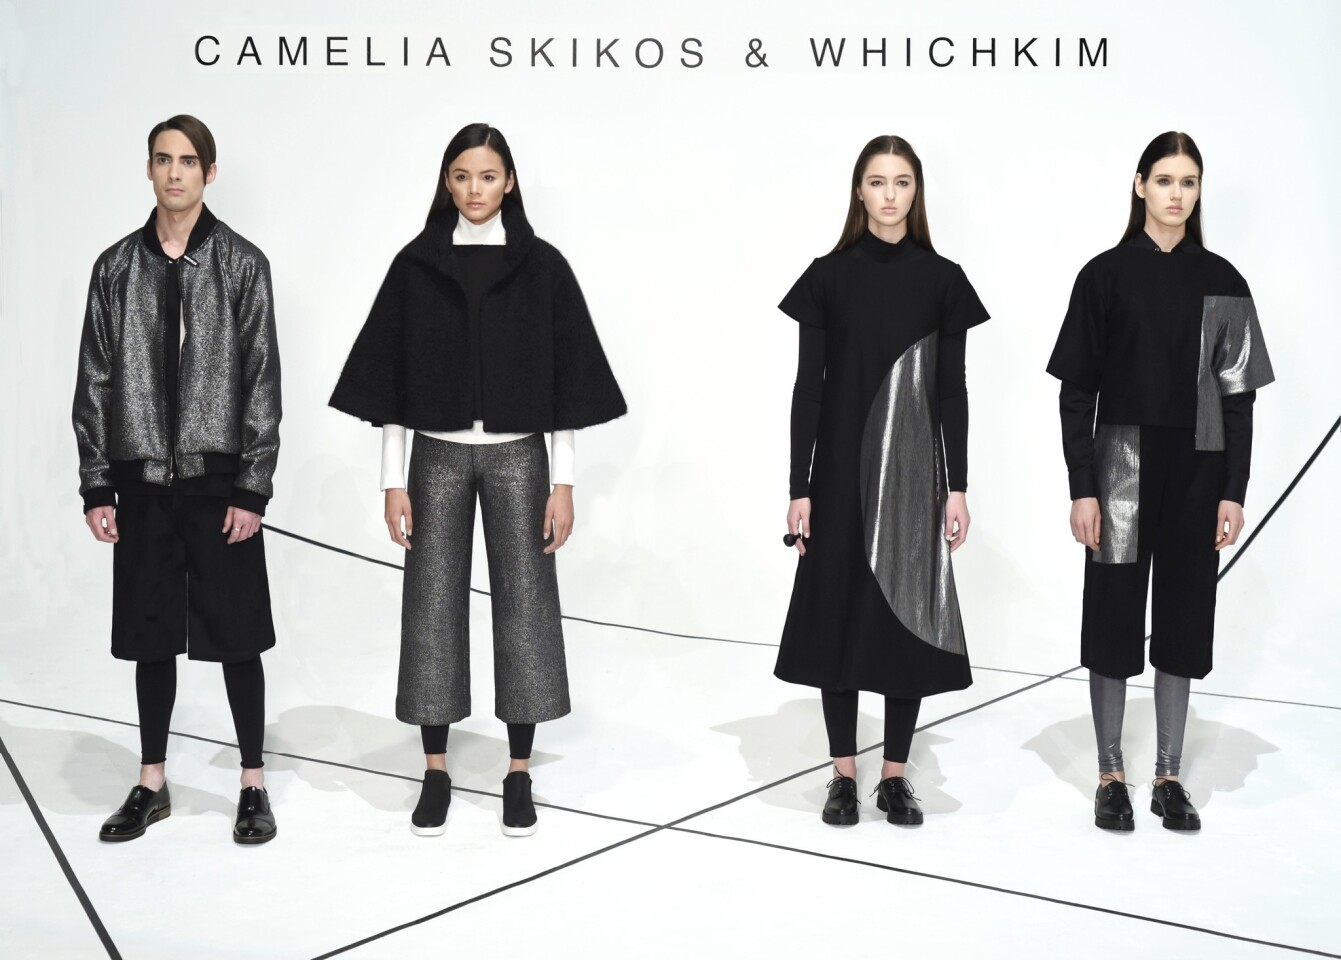 Designs from the Camilla Skikos x Whichkim collection at L.A. Fashion Week.